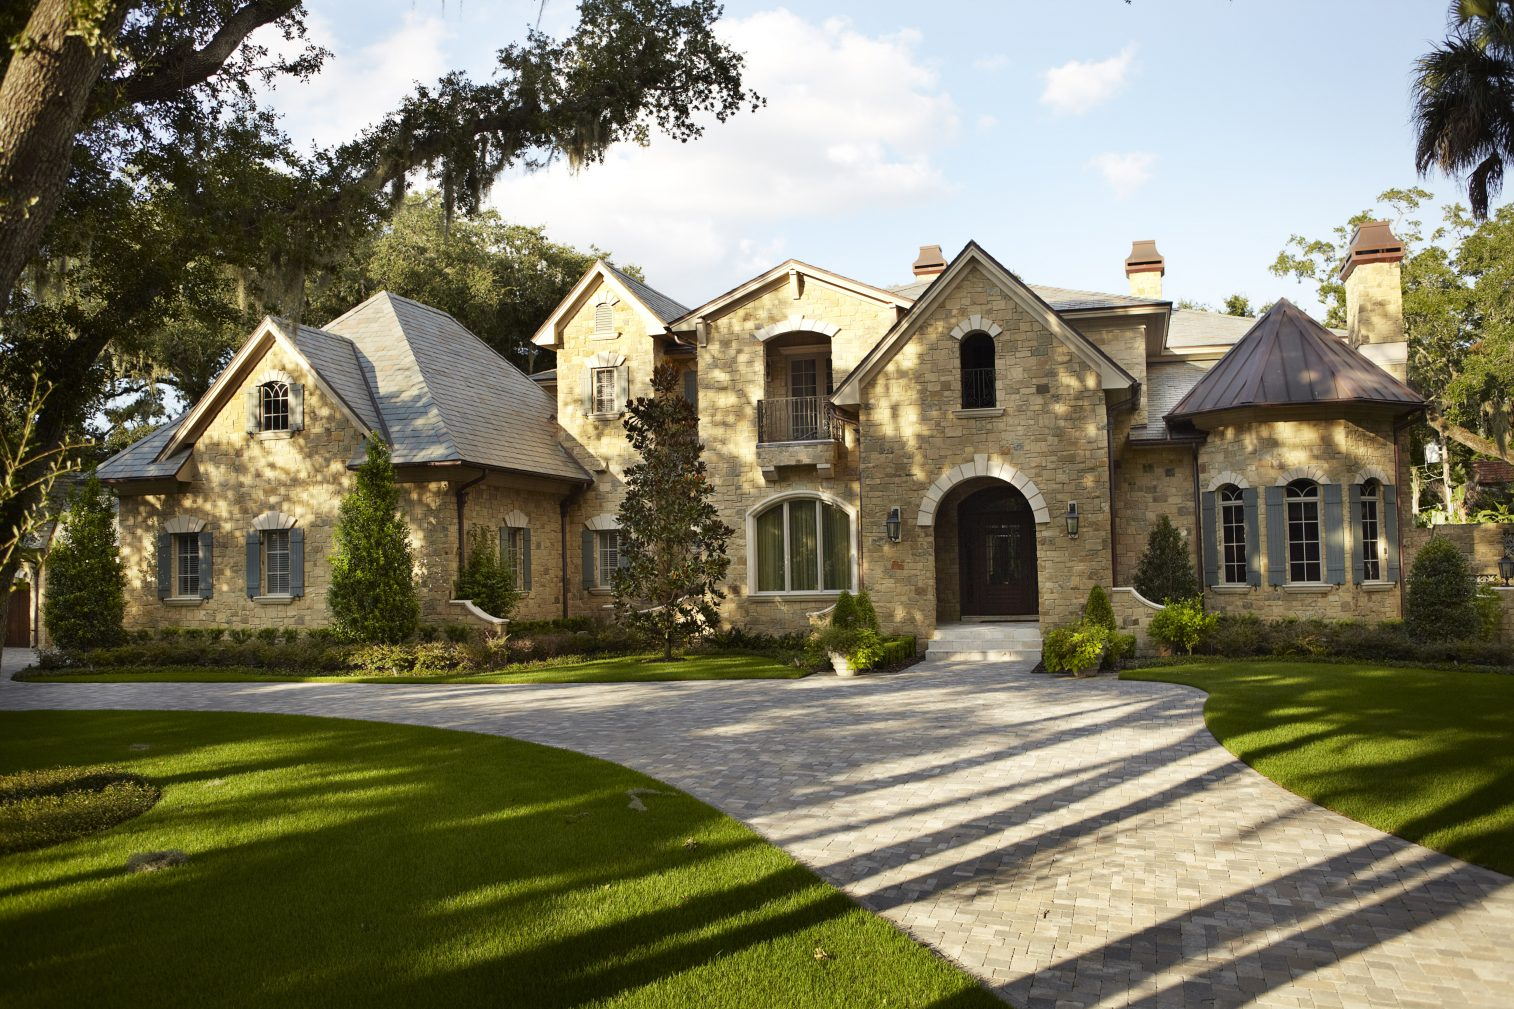 The audrey custom home designed and built by tampa home builders - A Tradition Of Artful Originals